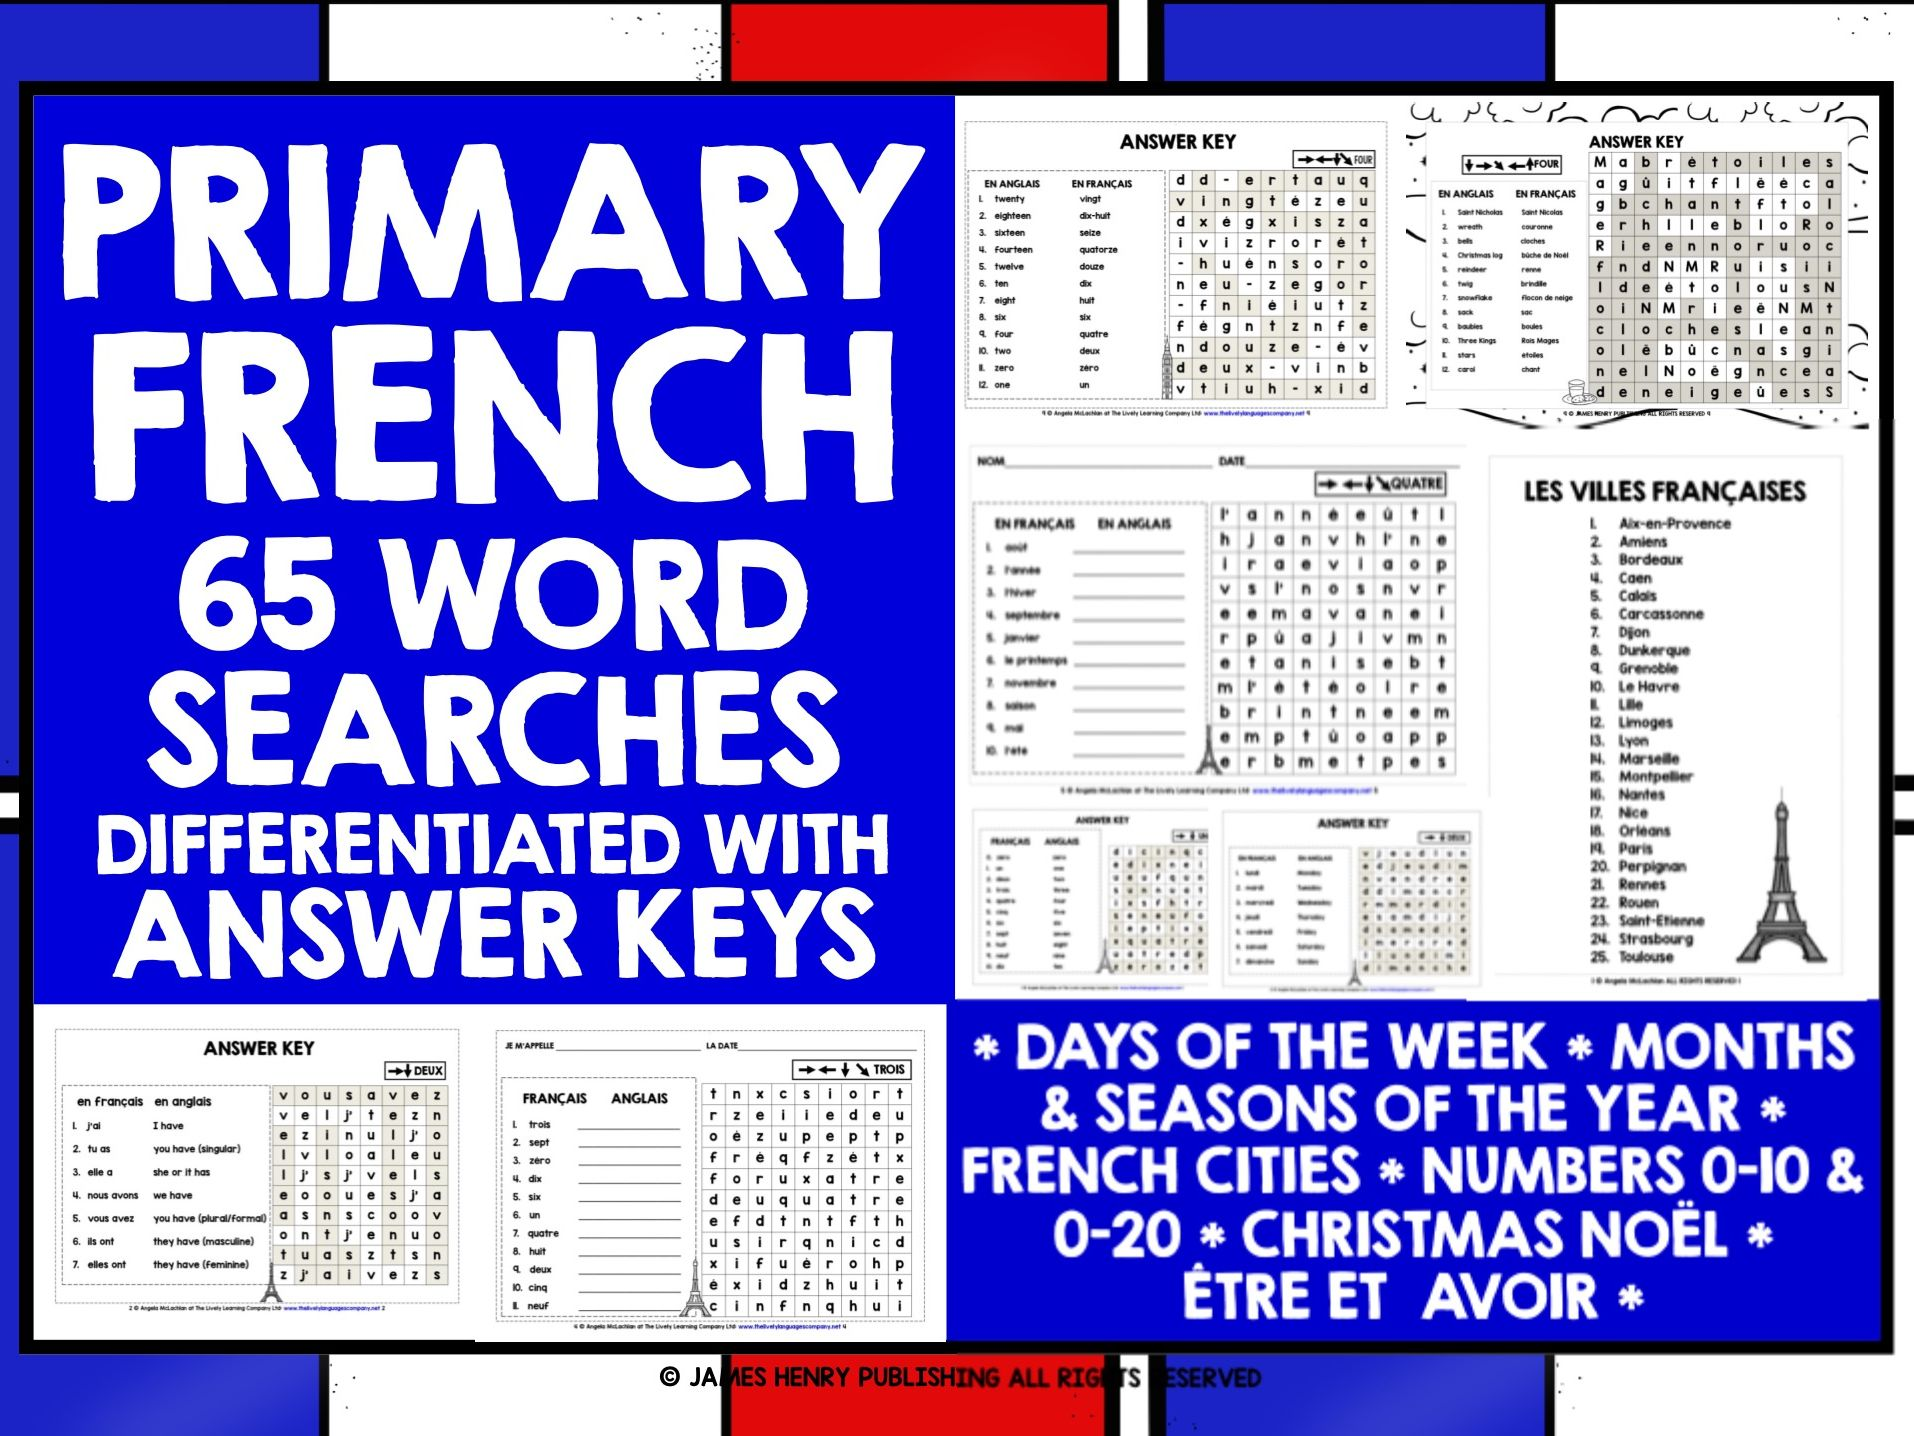 PRIMARY FRENCH WORD SEARCHES BUNDLE #1